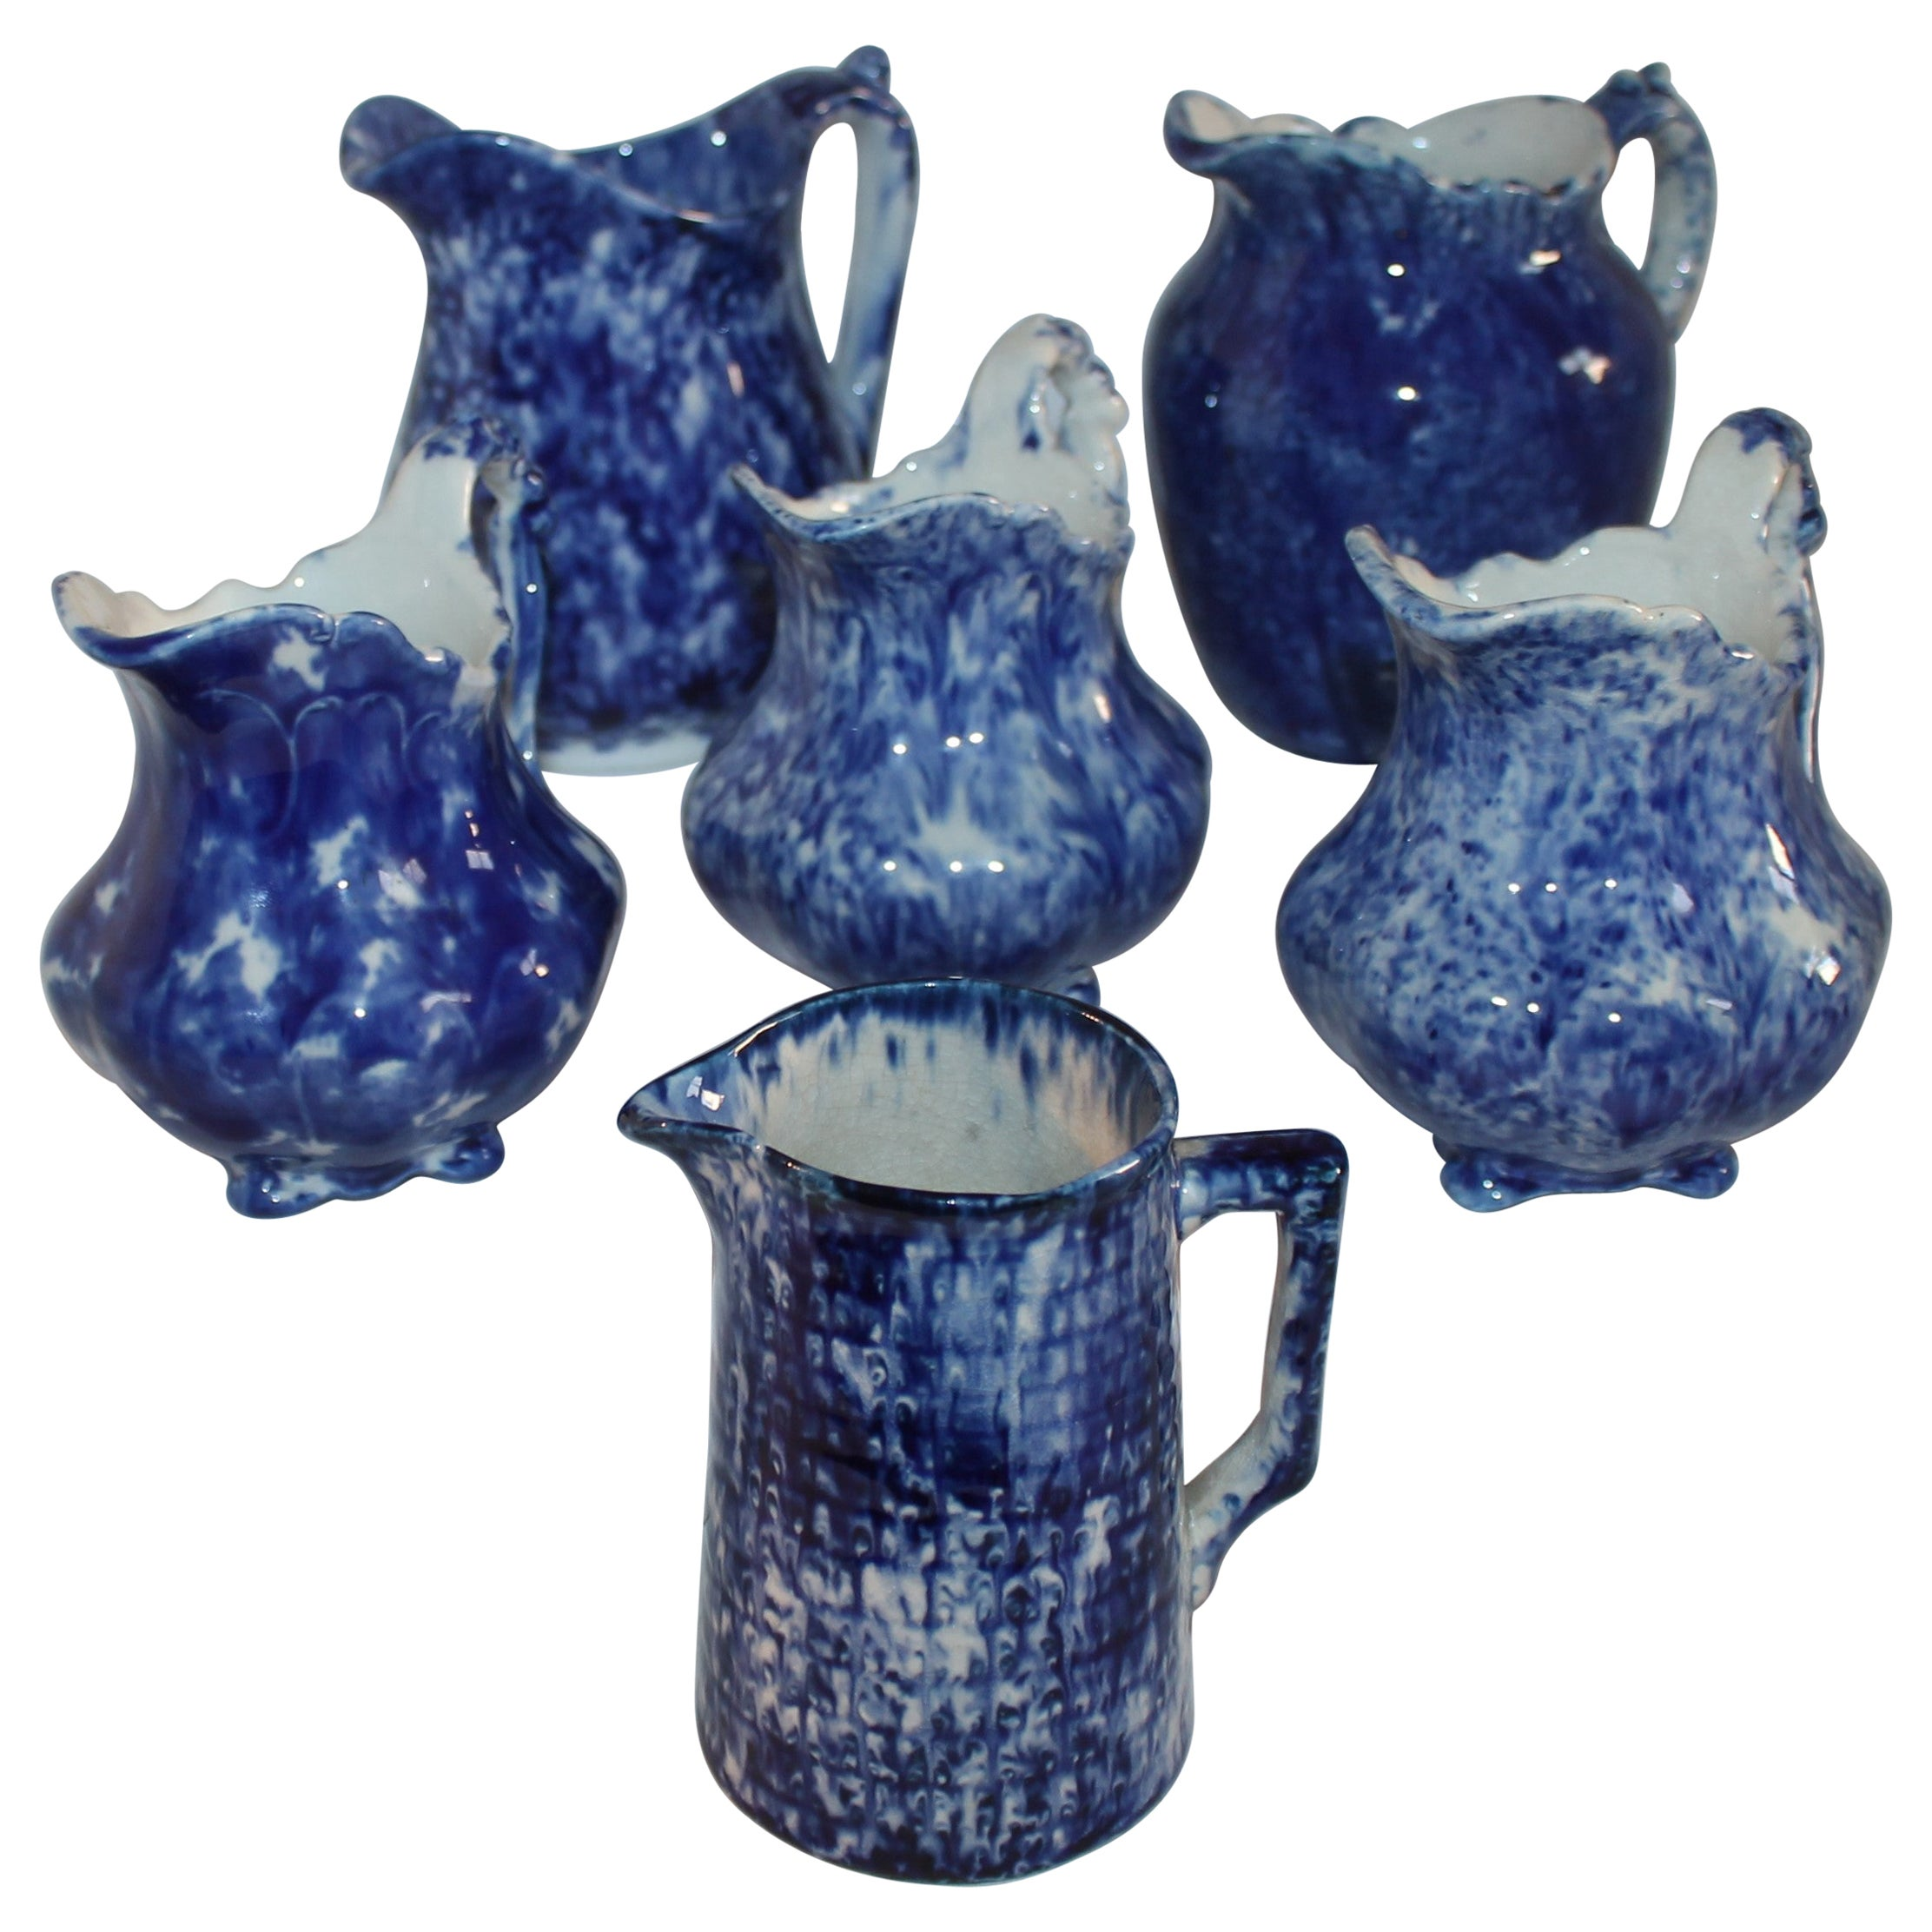 Collection of 19thc Sponge Ware Pitchers, 6 Pieces